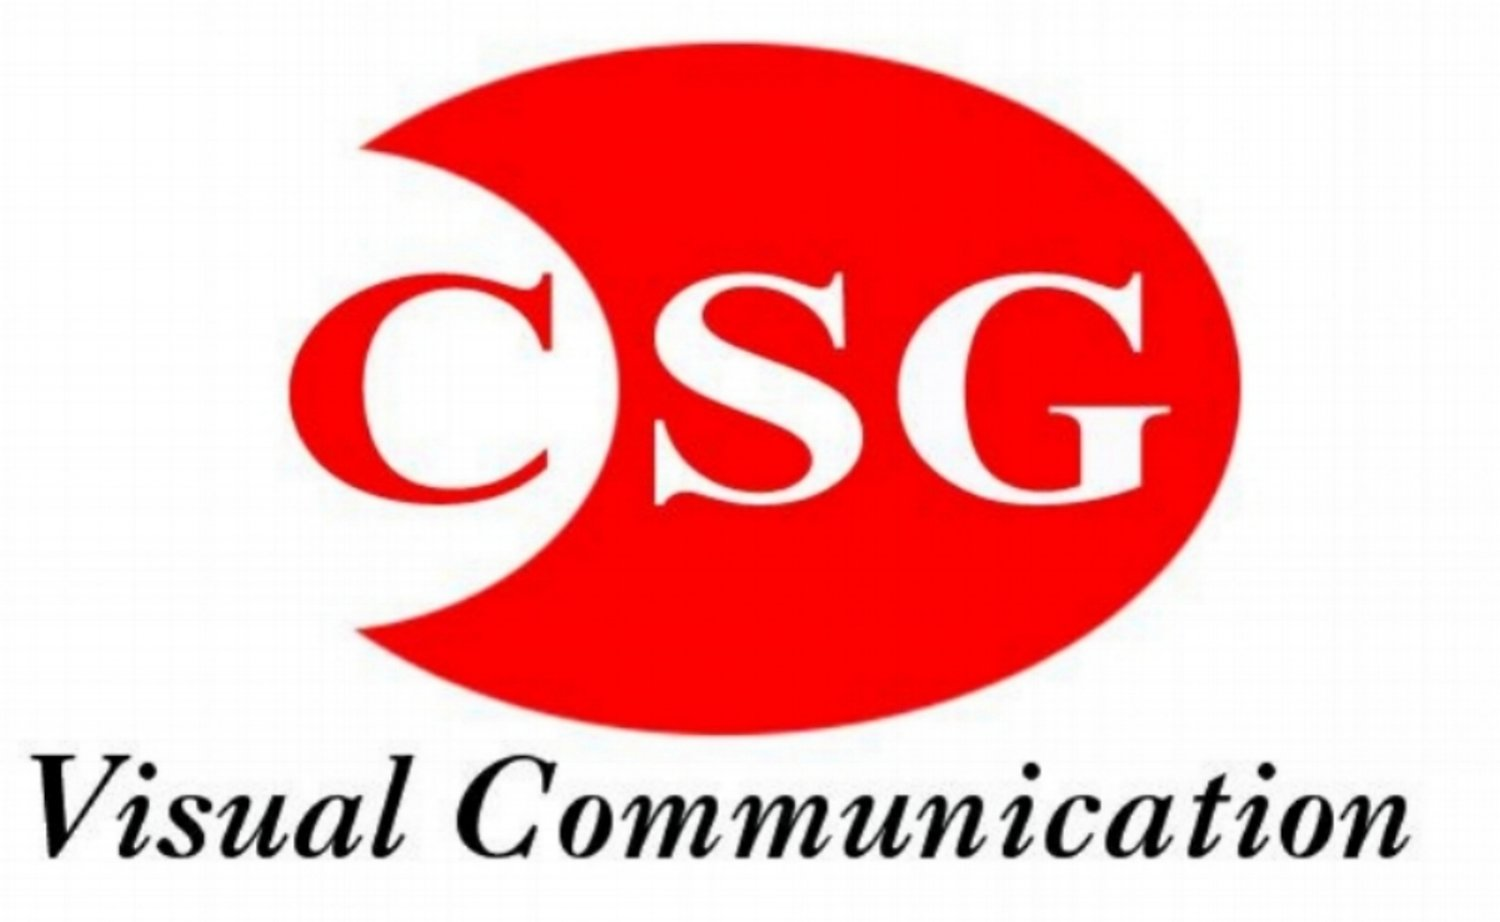 CSG Visual Communication, Inc.